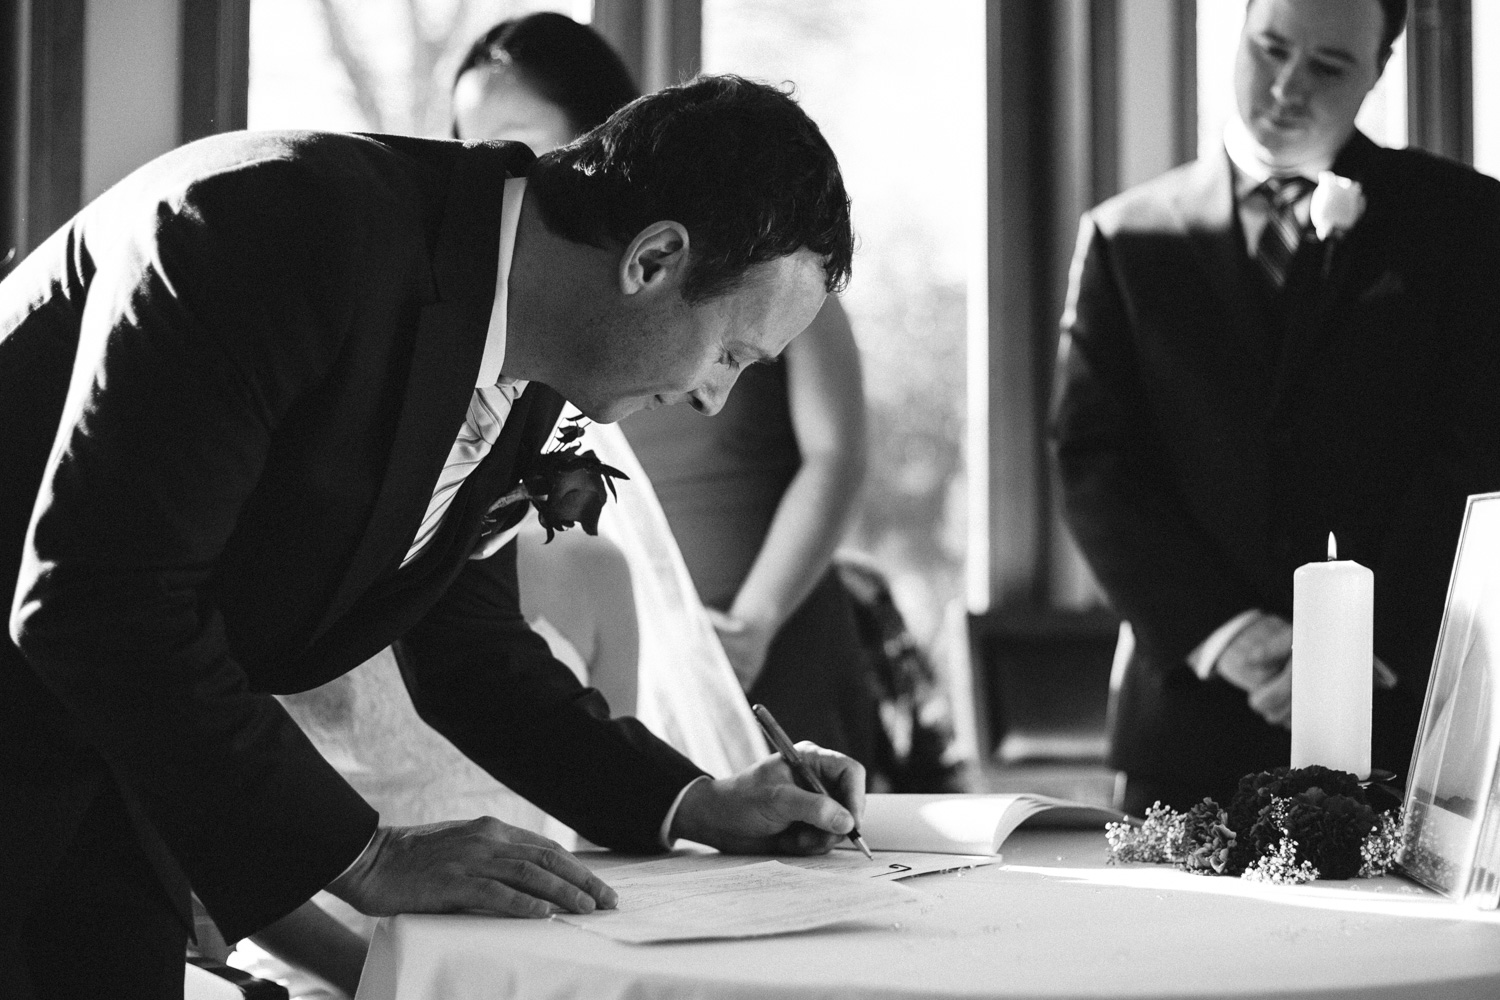 I saw the groom crack this smile as he was signing the wedding papers and quickly grabbed the moment. Just a millisecond prior he was not smiling. The smile really made this photograph.